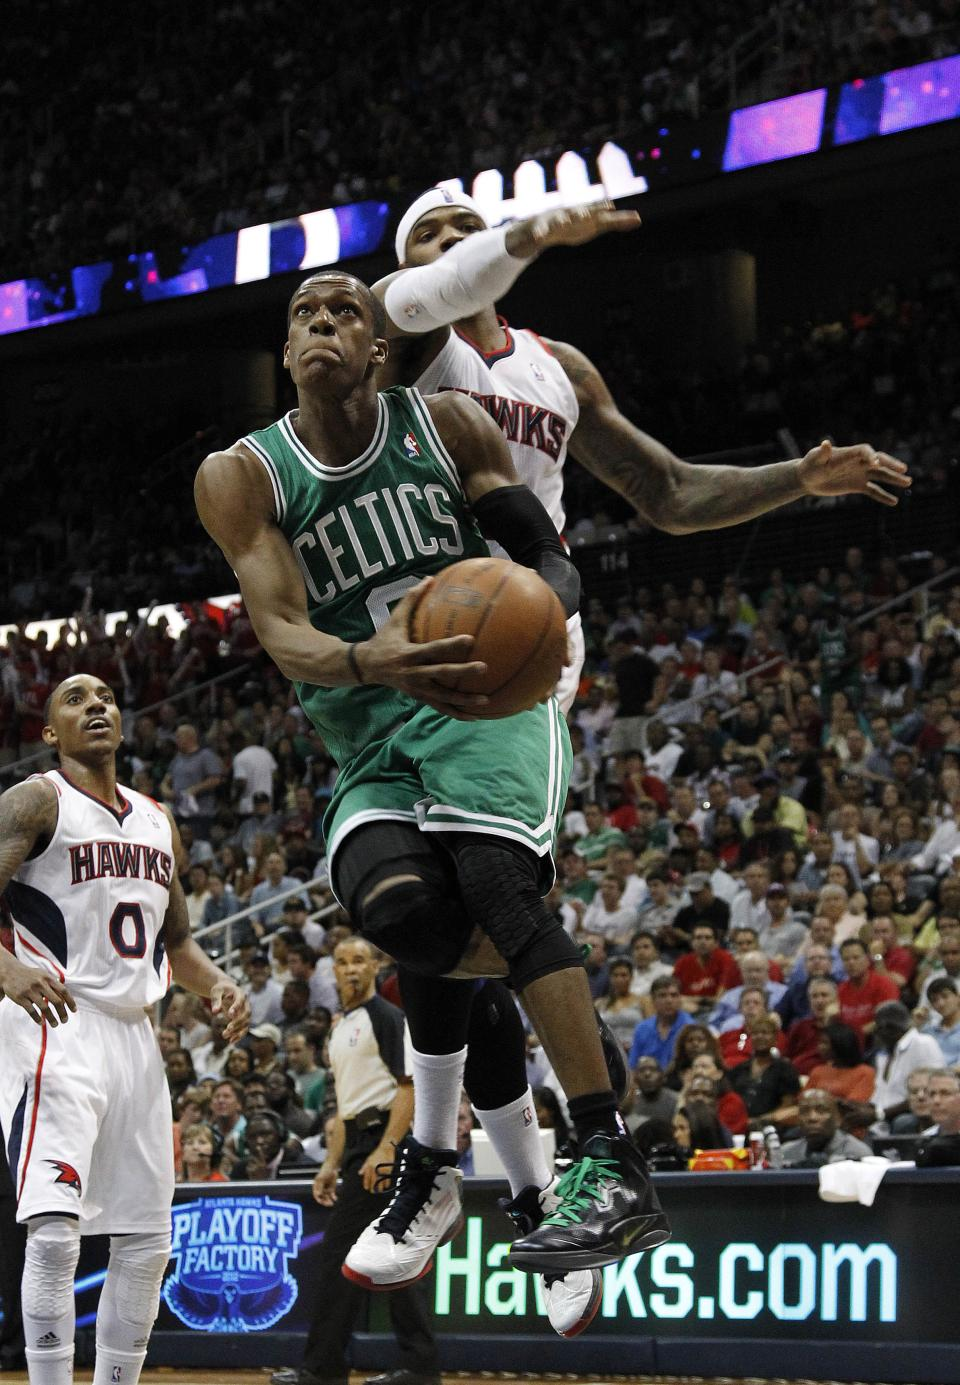 Boston Celtics point guard Rajon Rondo (9) drives as Atlanta Hawks power forward Josh Smith (5) defends during the second  half of Game 5 of an NBA first-round playoff series basketball game Tuesday, May 8, 2012, in Atlanta. (AP Photo/John Bazemore)